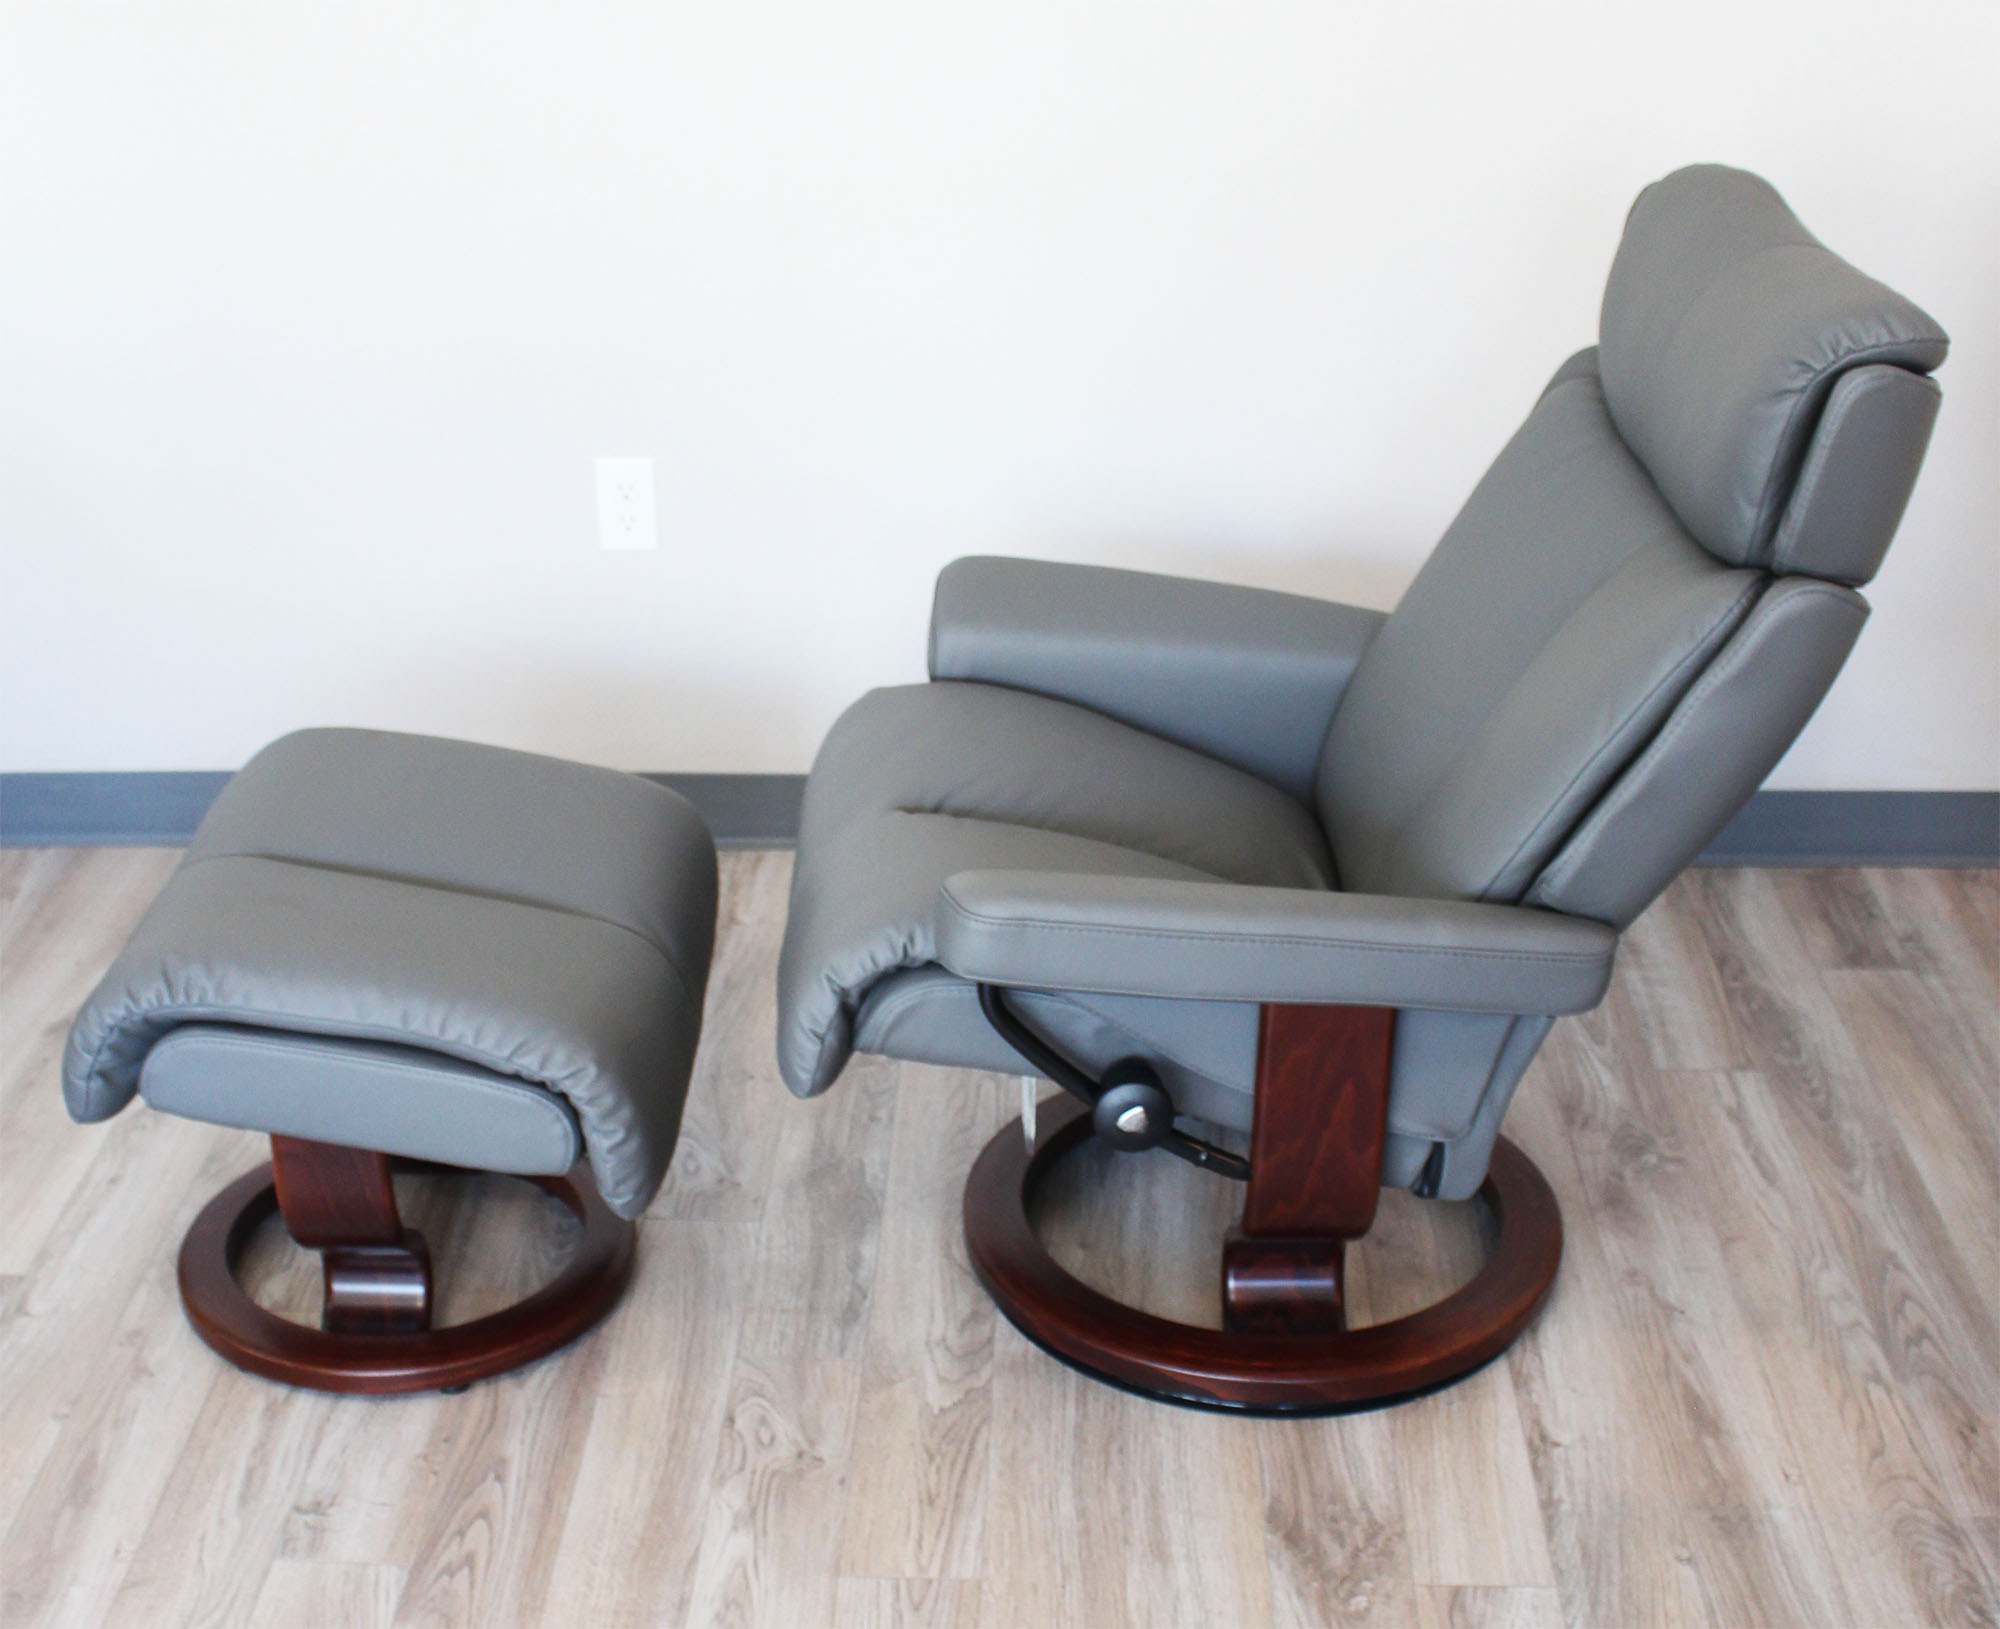 Stressless Magic Paloma Metal Grey Color Leather Recliner Chair and Ottoman & Stressless Magic Paloma Metal Grey Color Leather by Ekornes ... islam-shia.org